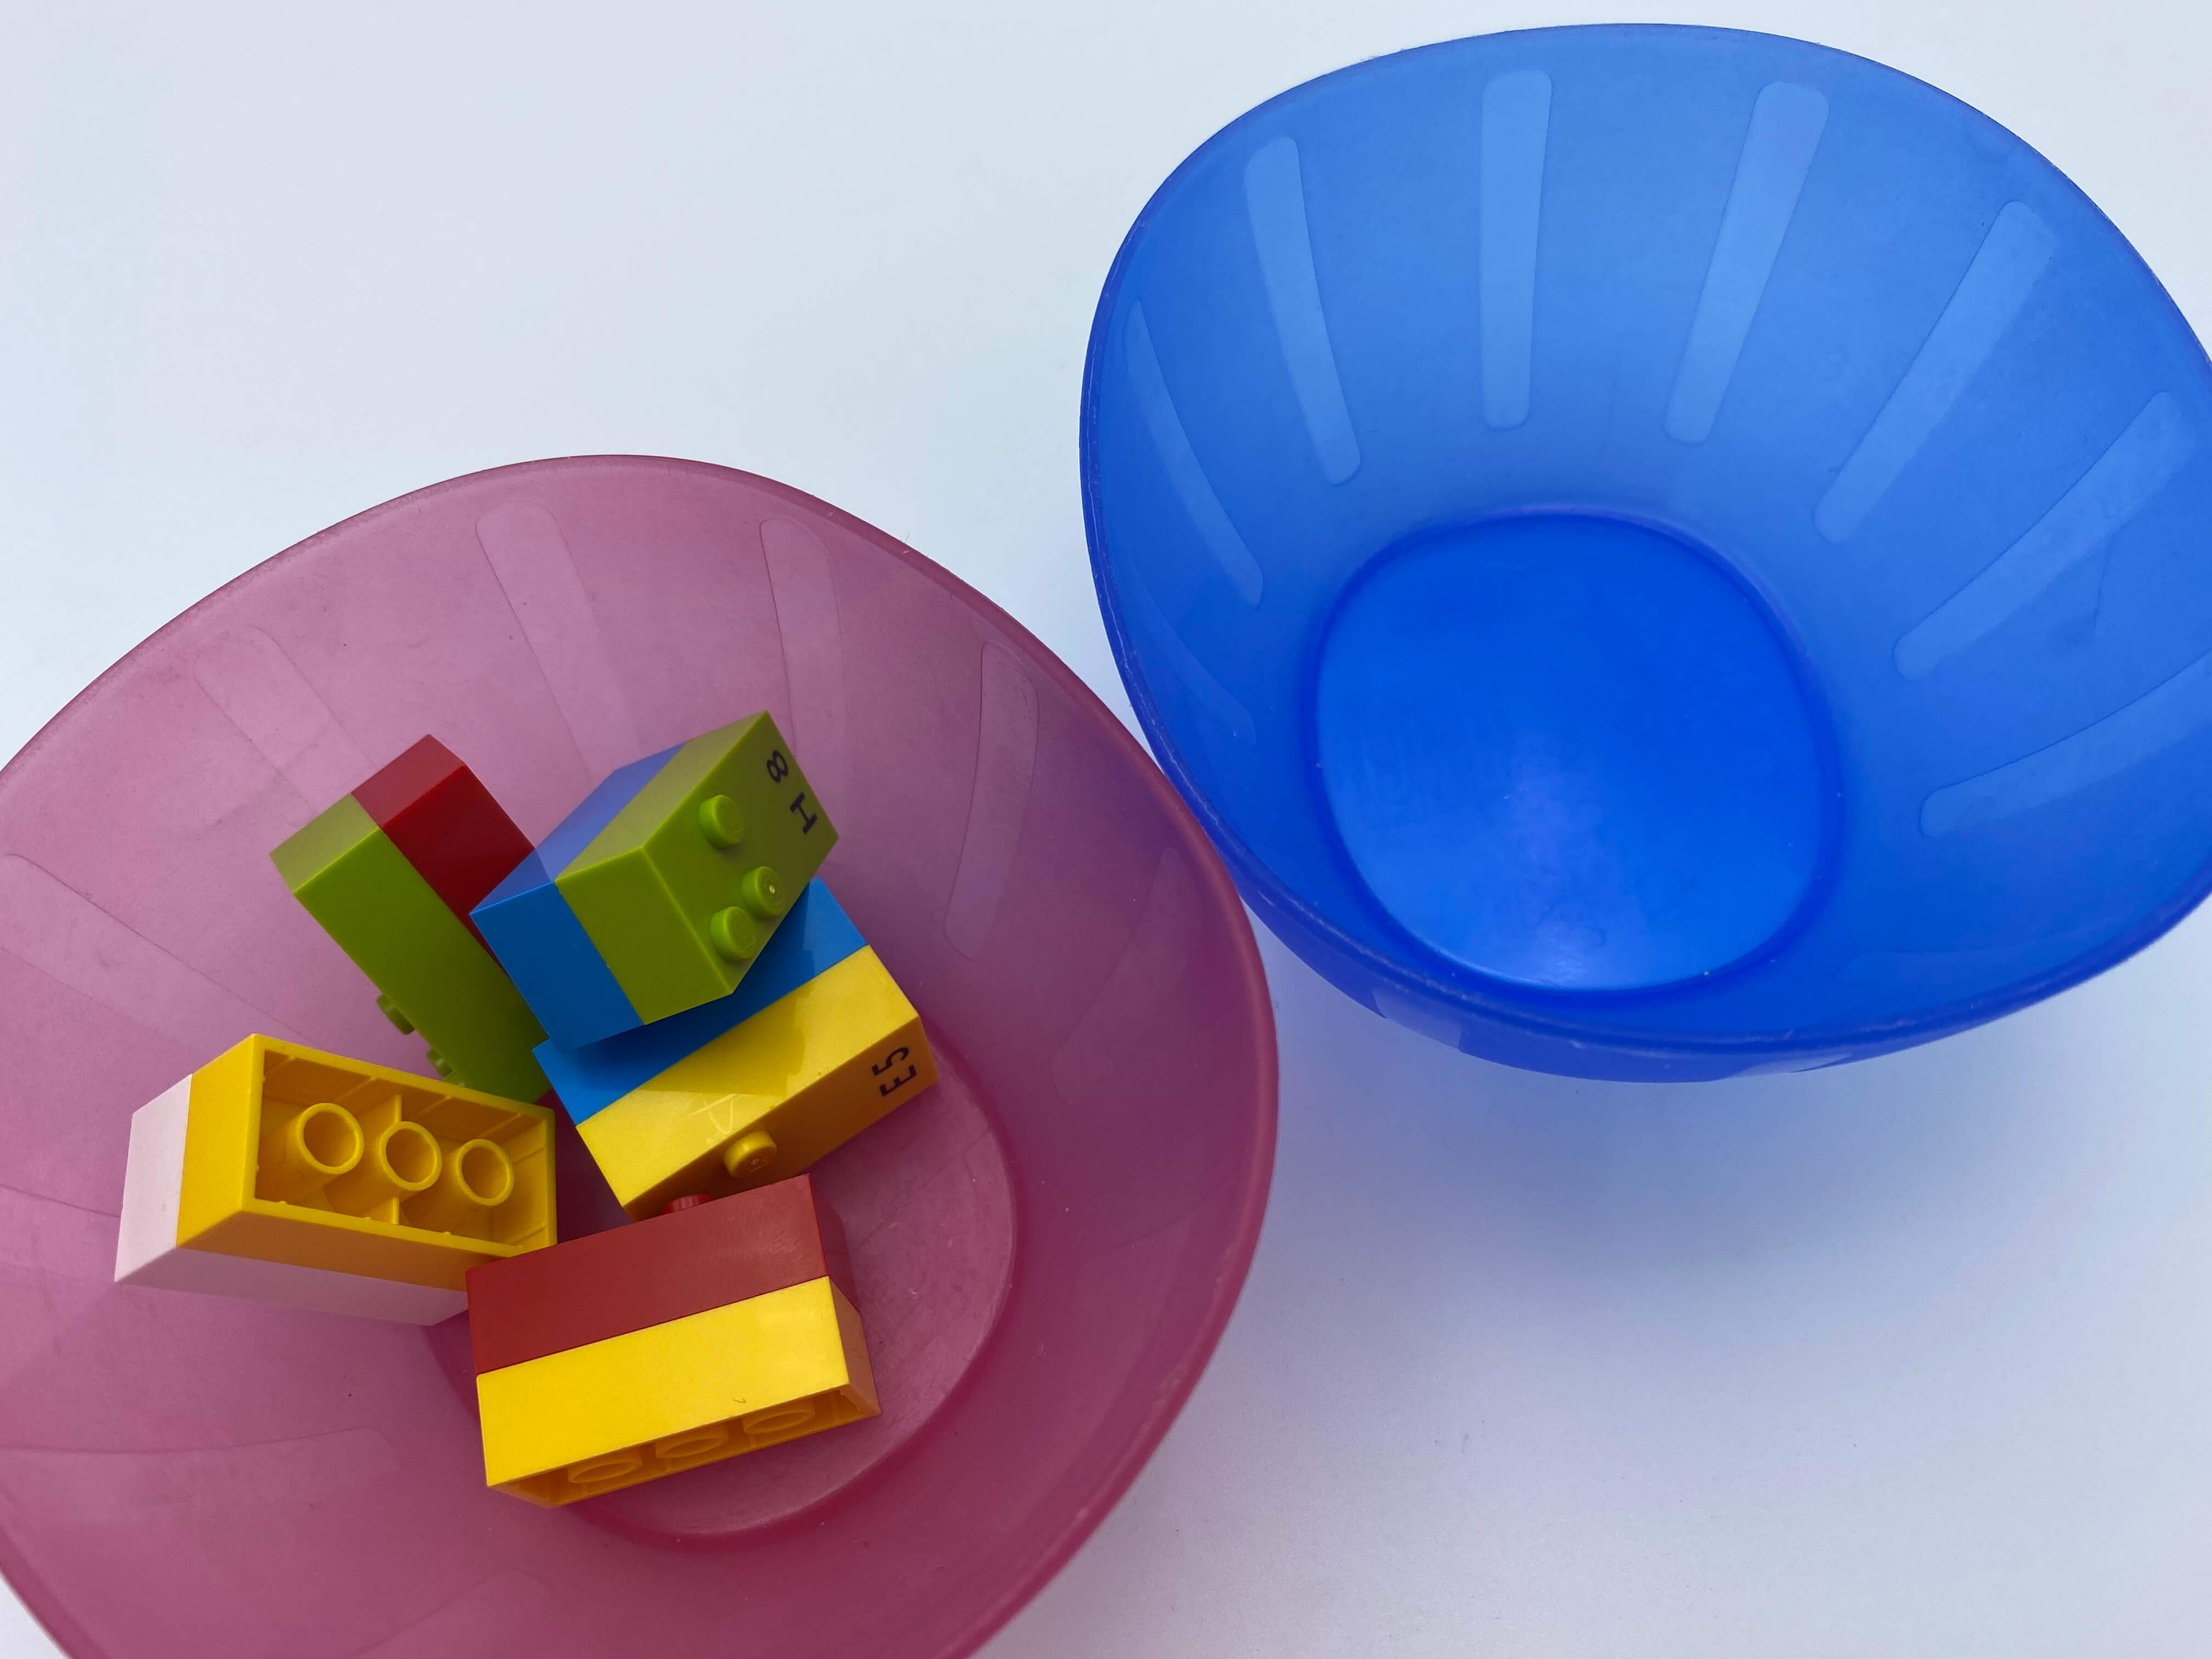 5 pairs of bricks in bowl 1, bowl 2 is empty.